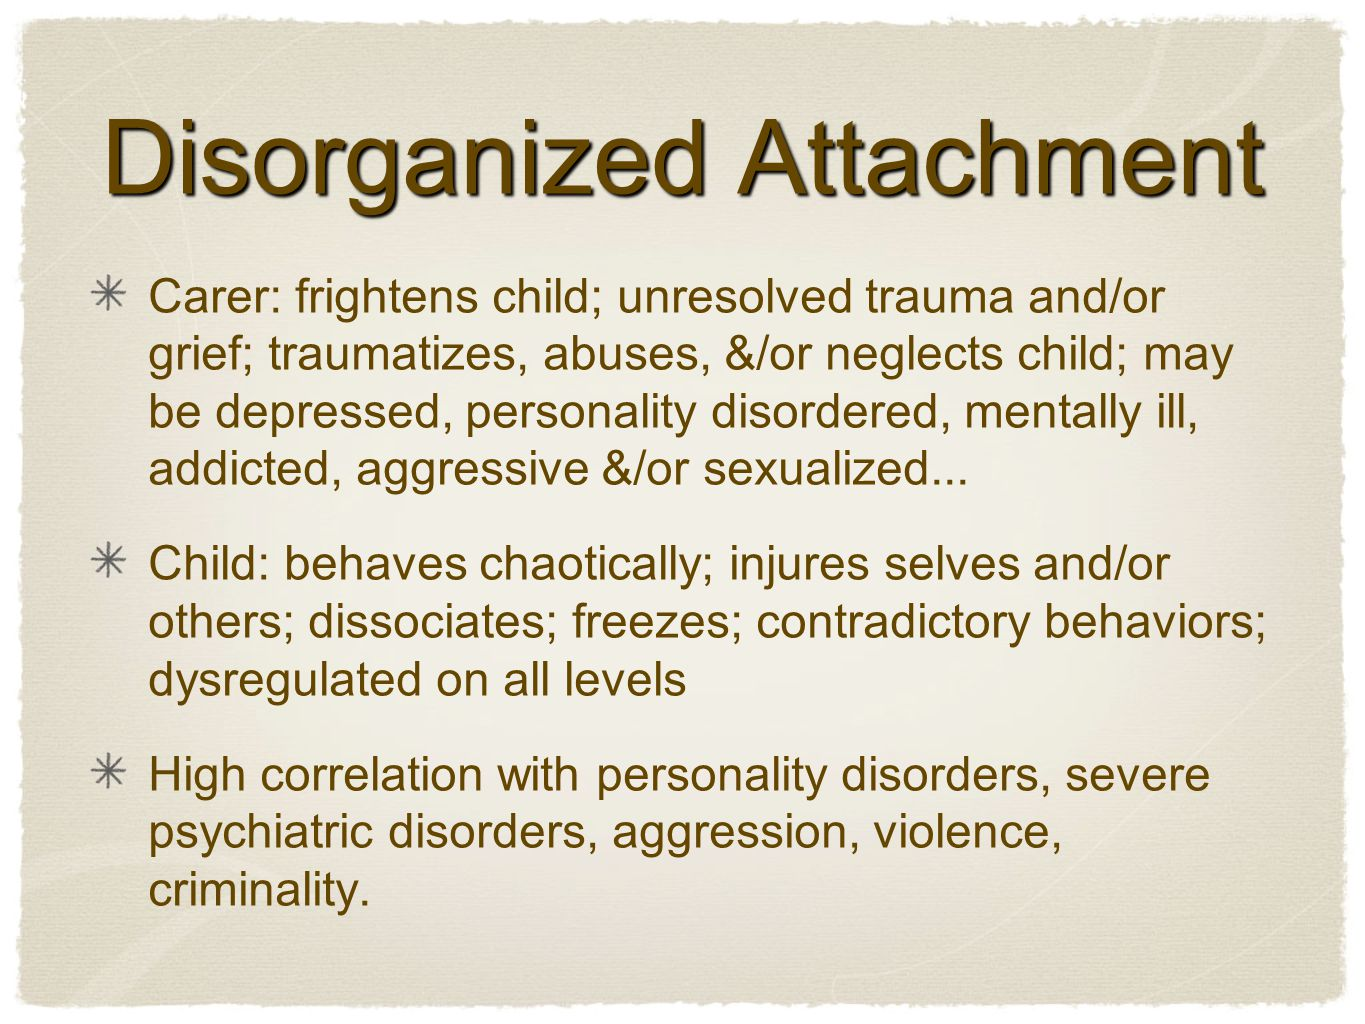 Disorganized Attachment Carer: frightens child; unresolved trauma and/or grief; traumatizes, abuses, &/or neglects child; may be depressed, personality disordered, mentally ill, addicted, aggressive &/or sexualized...